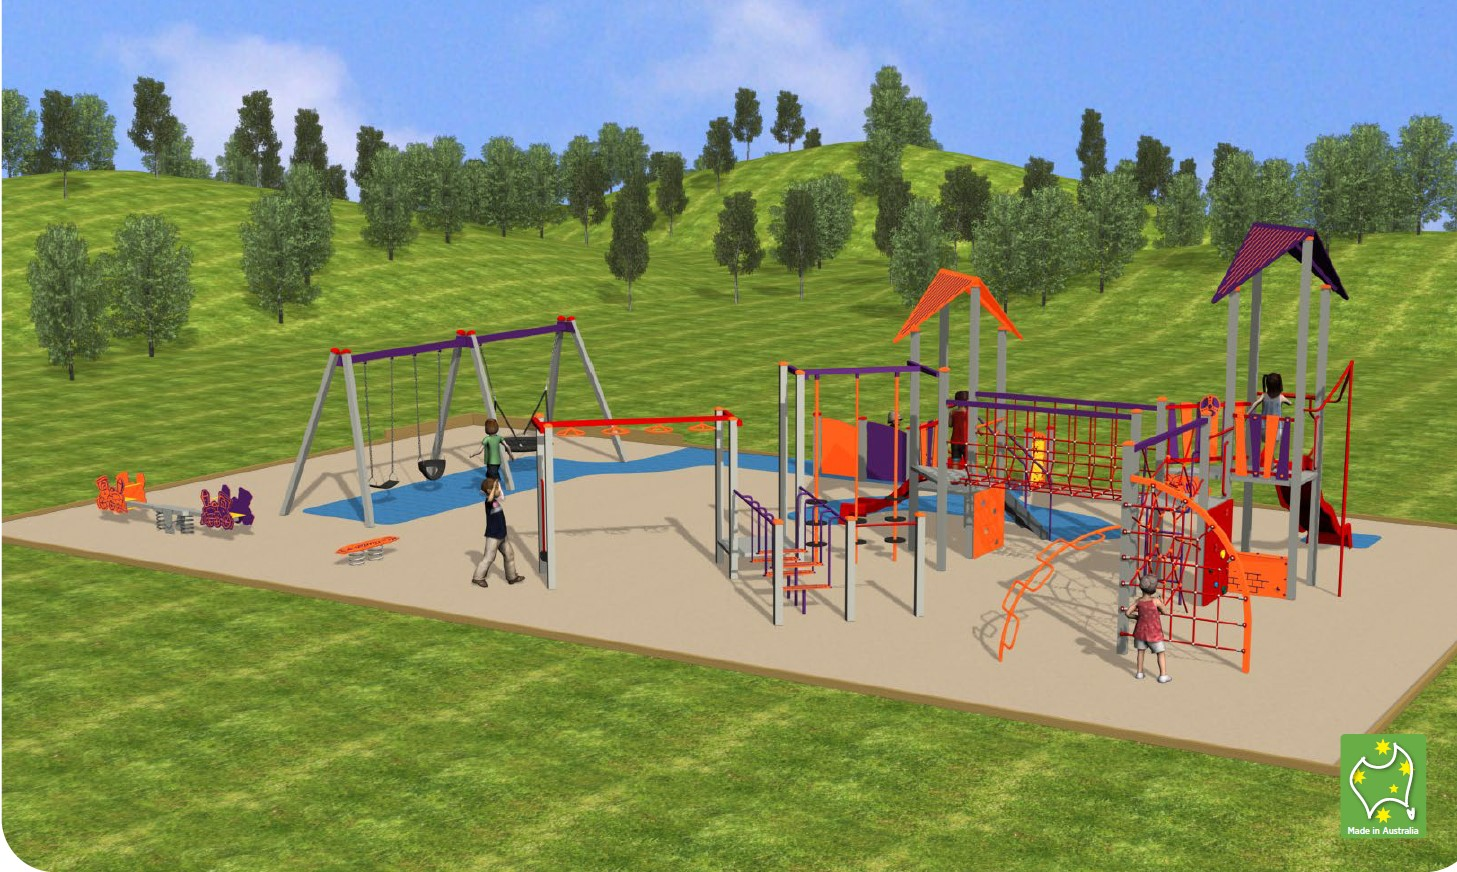 Rear view of proposed playground